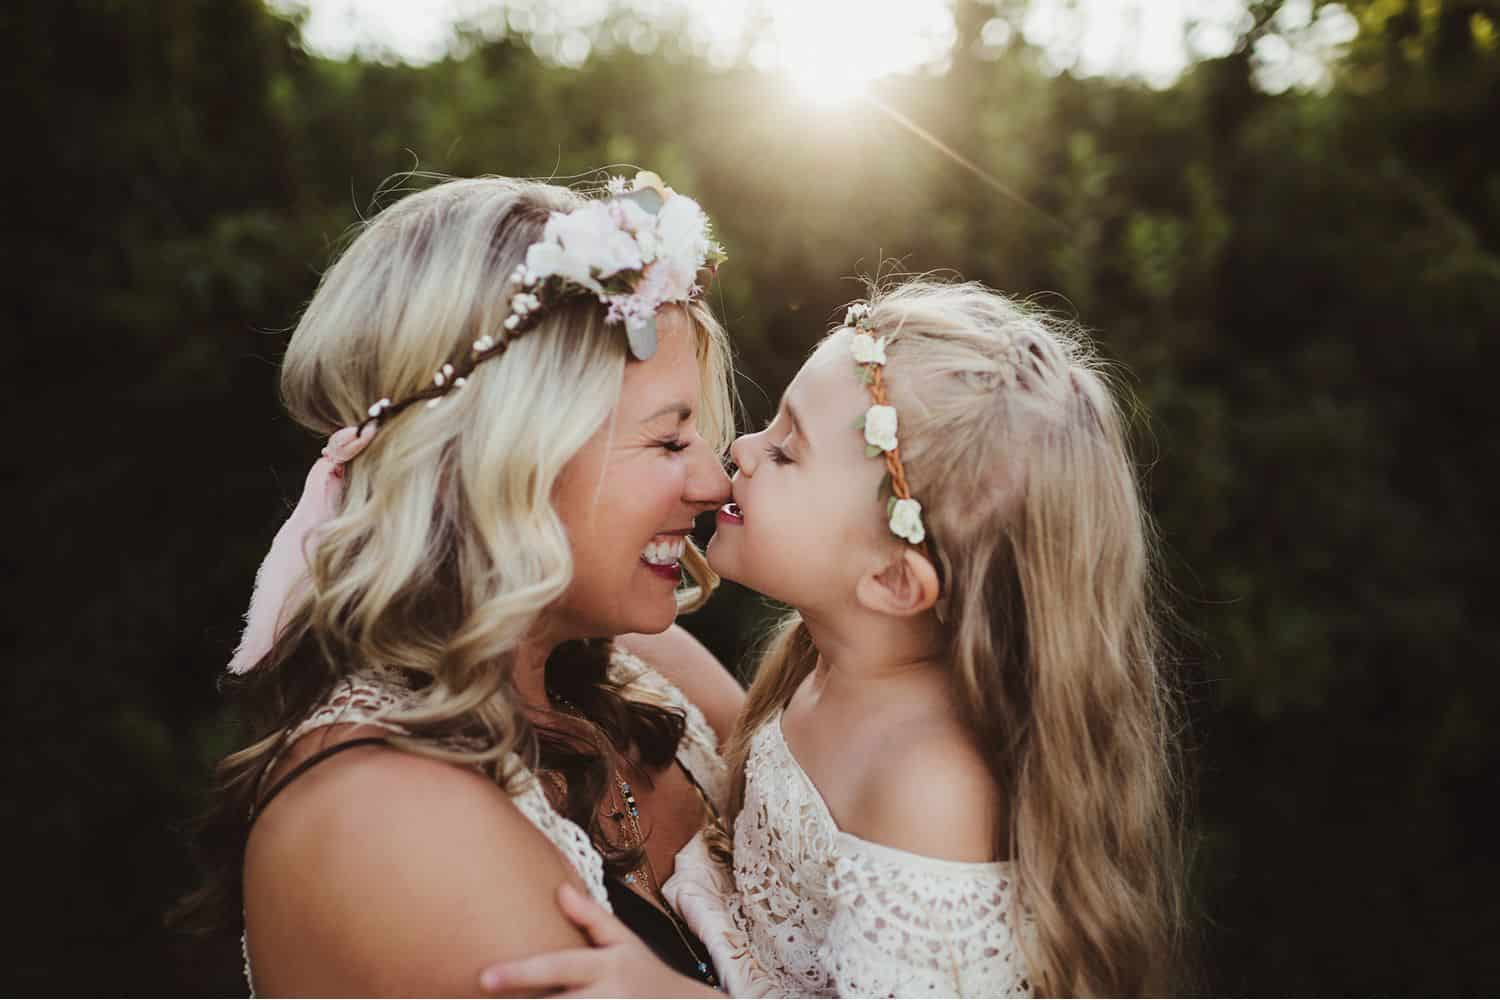 mother and daughter rub noses wearing white lace dresses